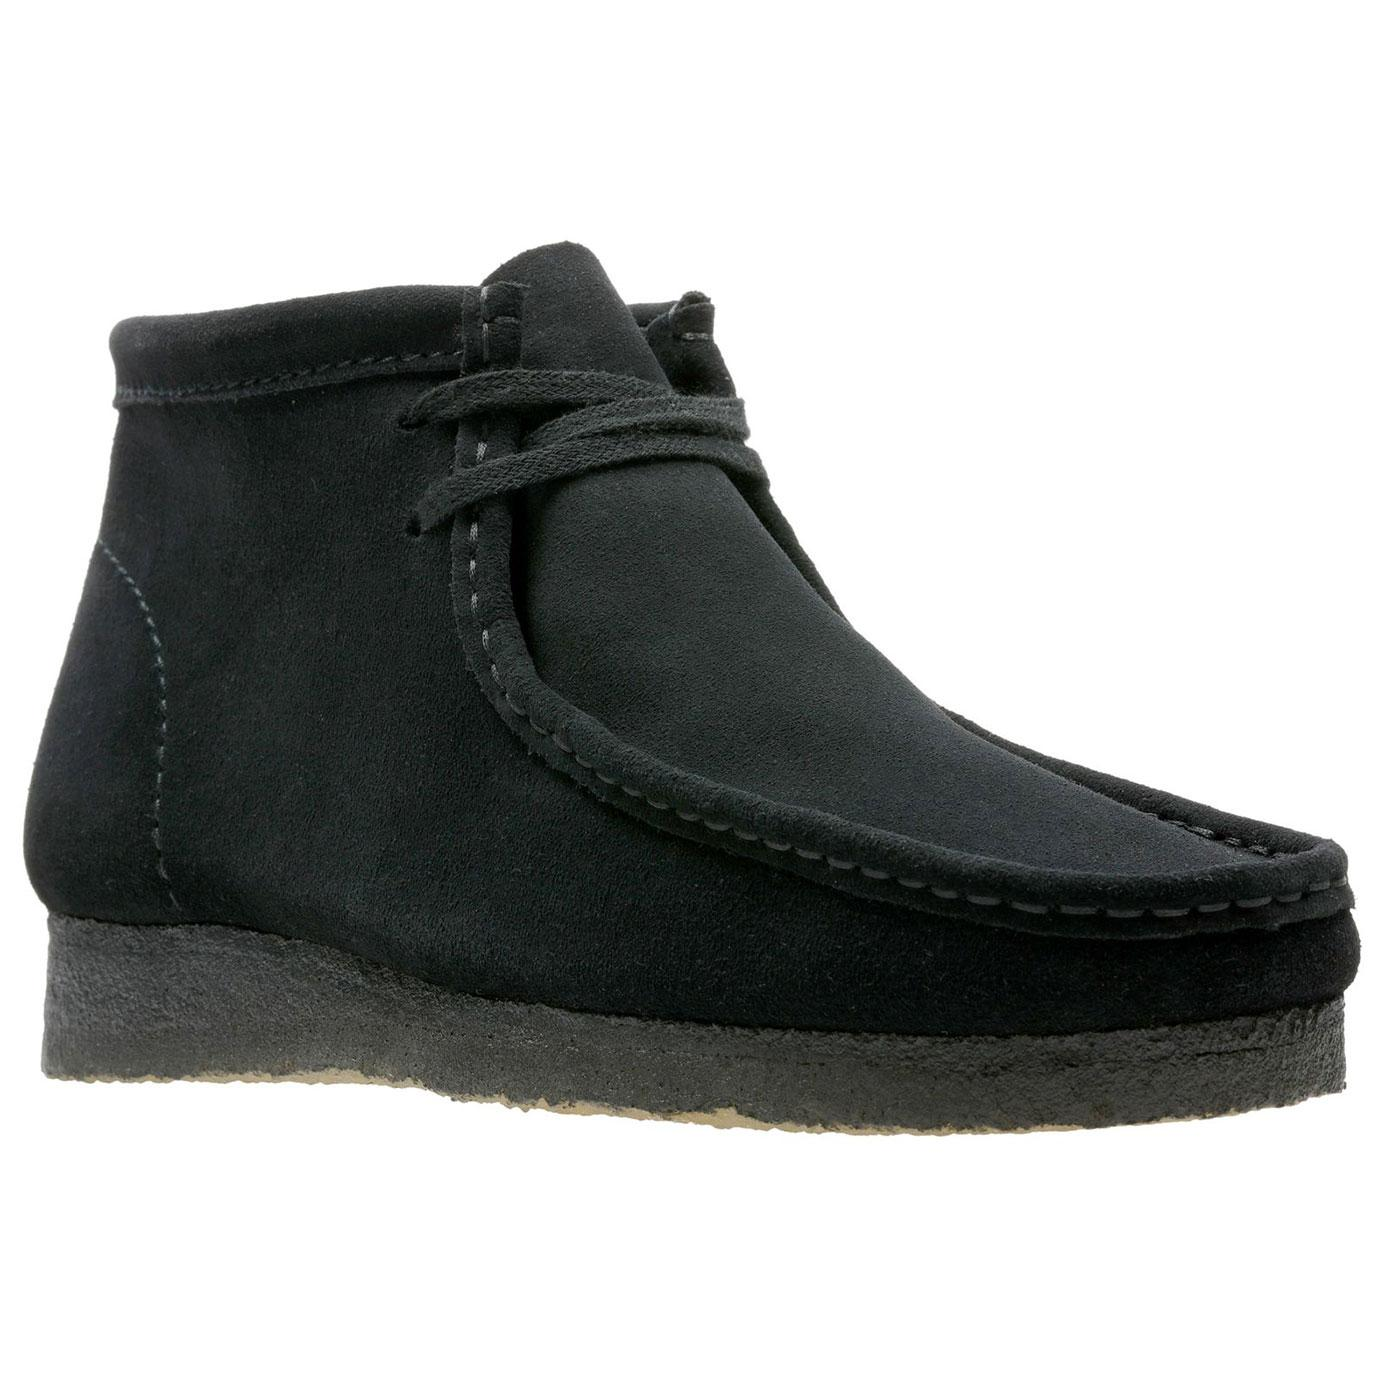 Wallabee Boots CLARKS ORIGINALS Womens Suede Shoes